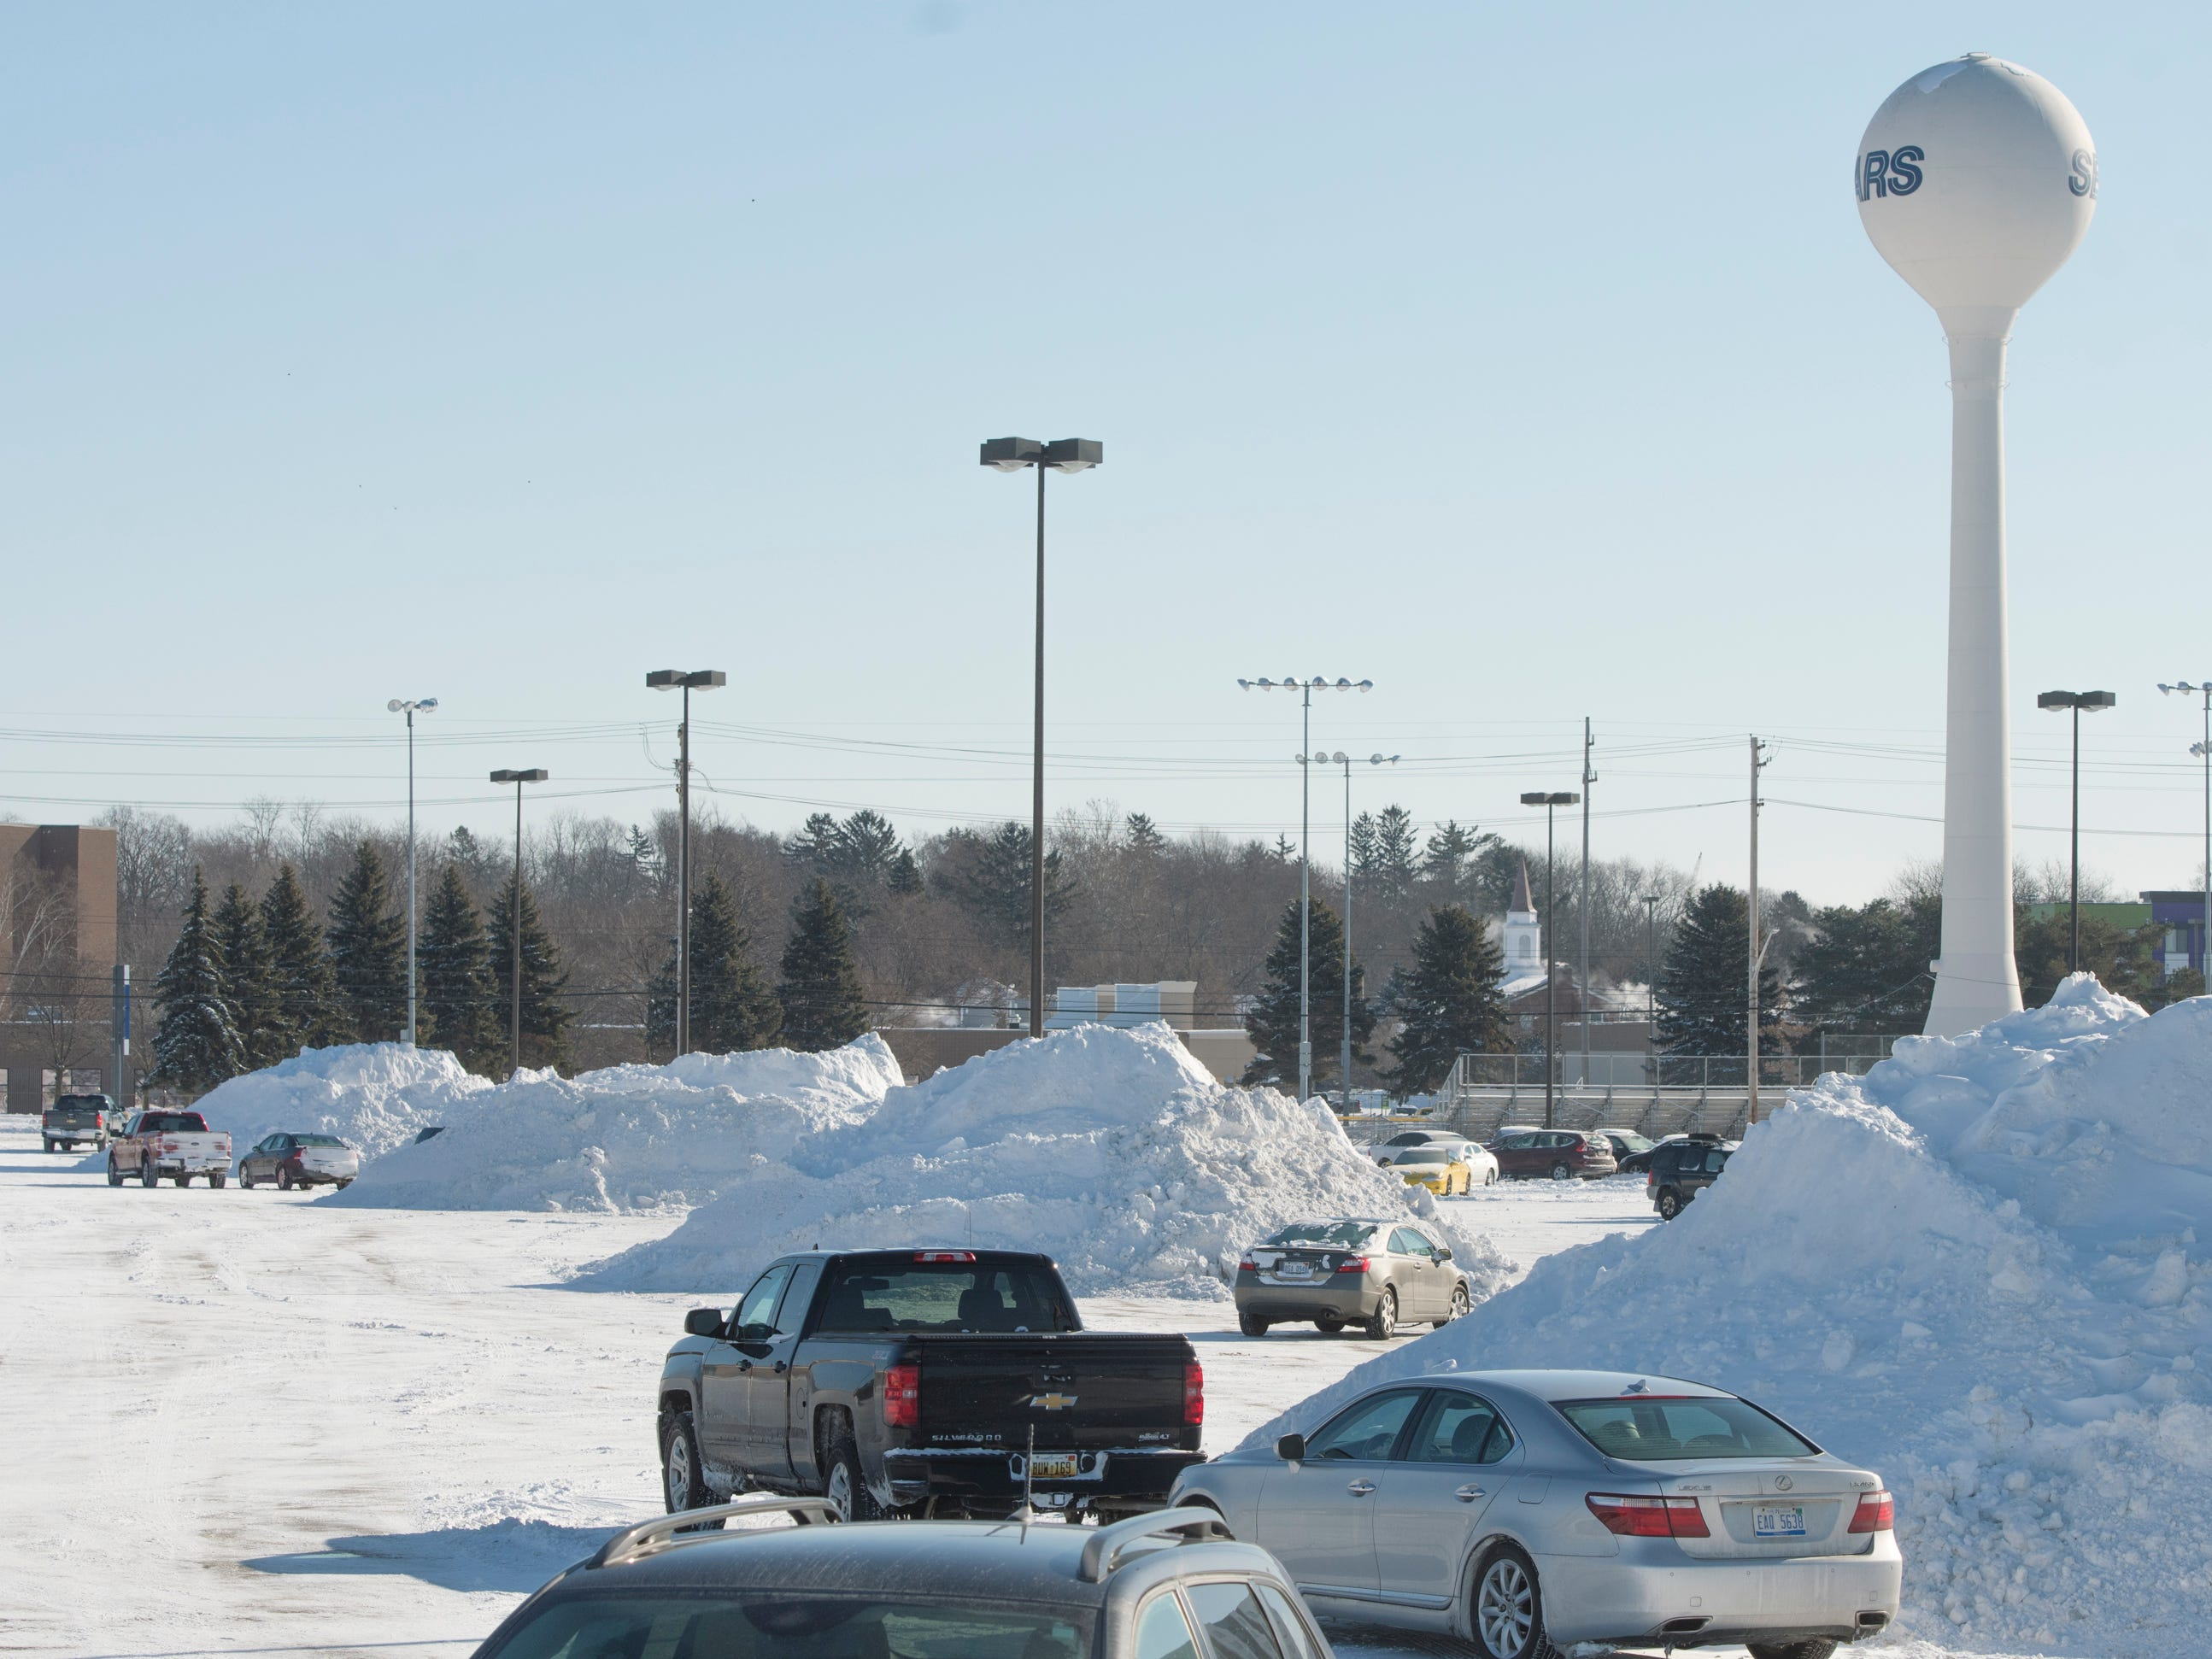 Mounds of snow are piled high throughout Frandor Shopping Center's parking lot Thursday, Jan. 31, 2019. Officials say river levels are expected to rise with warmer temperatures and snowmelt this weekend.